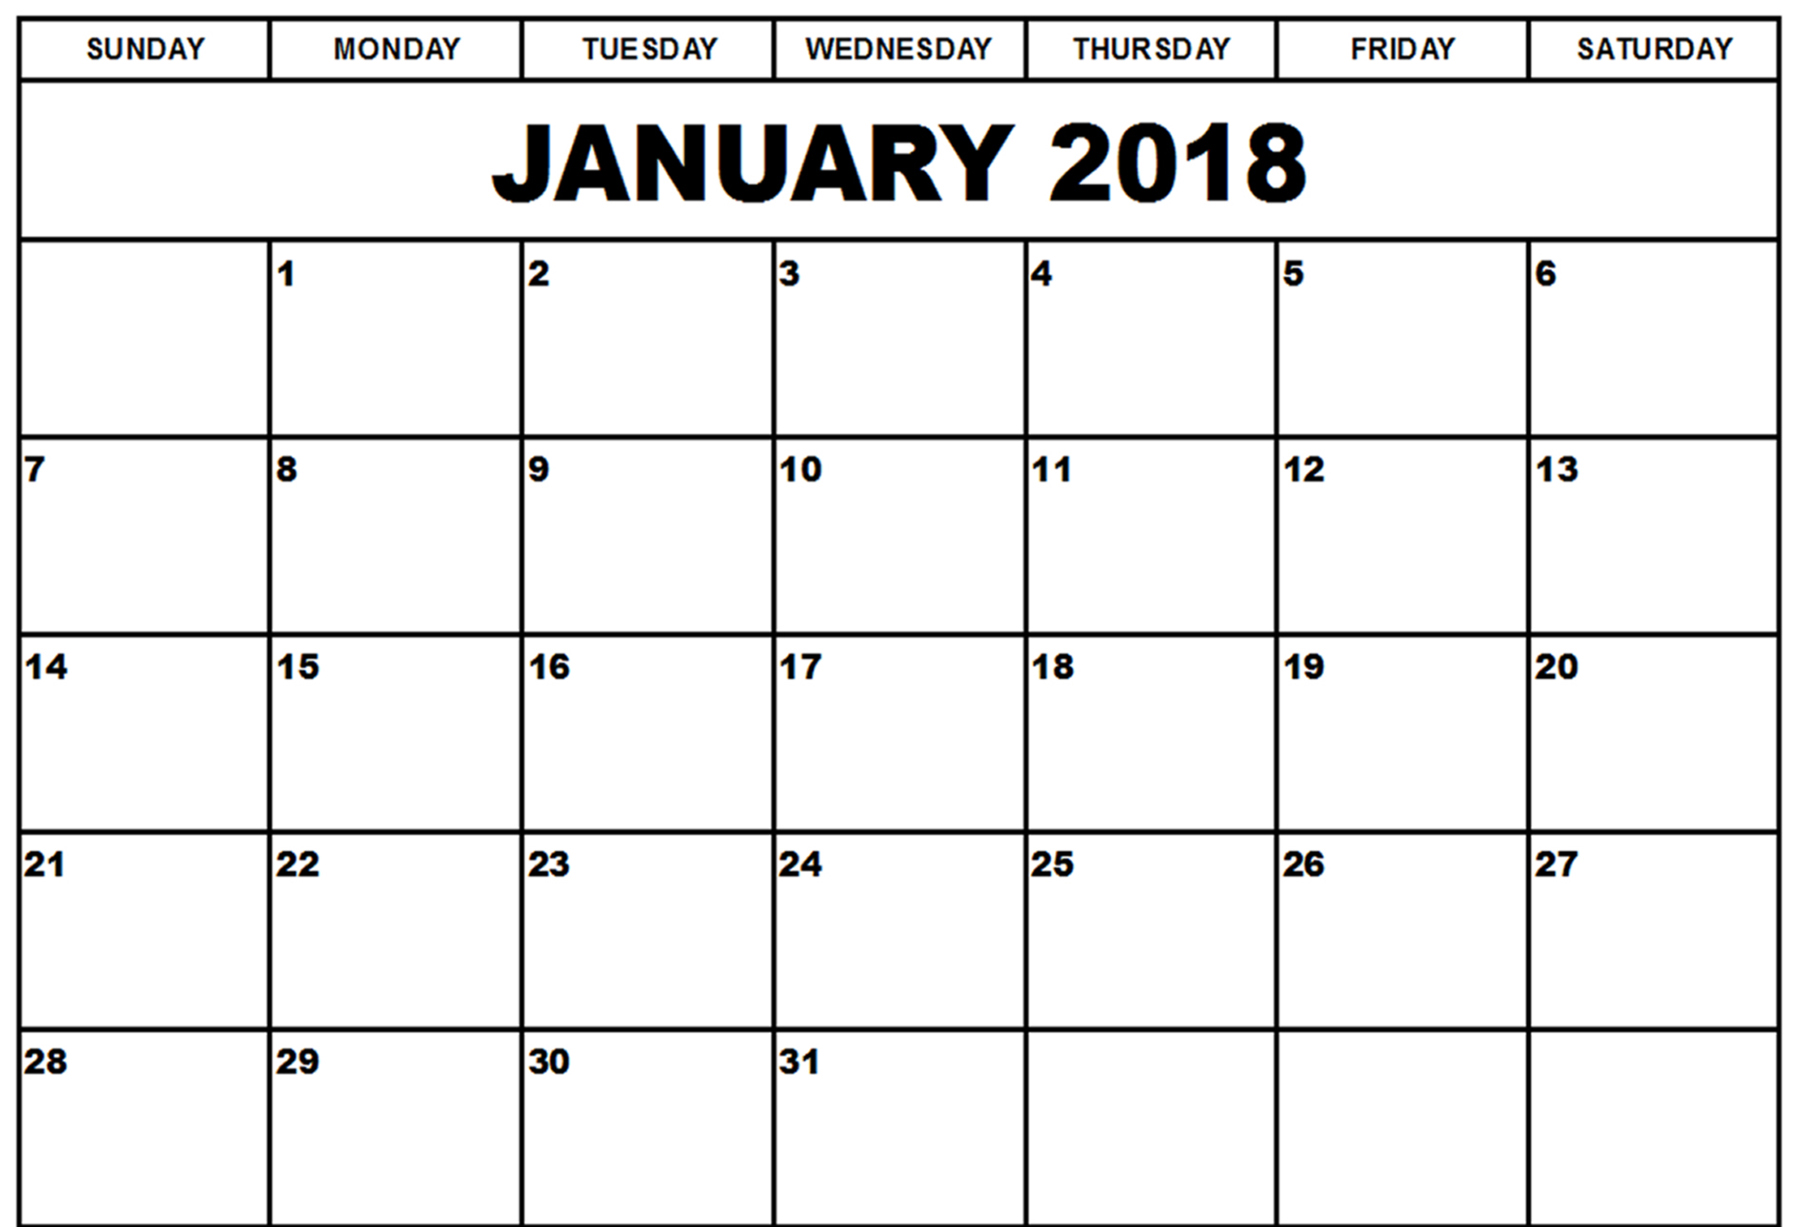 2018 Calendars of January Month | 2017 Calendar printable for Free ...